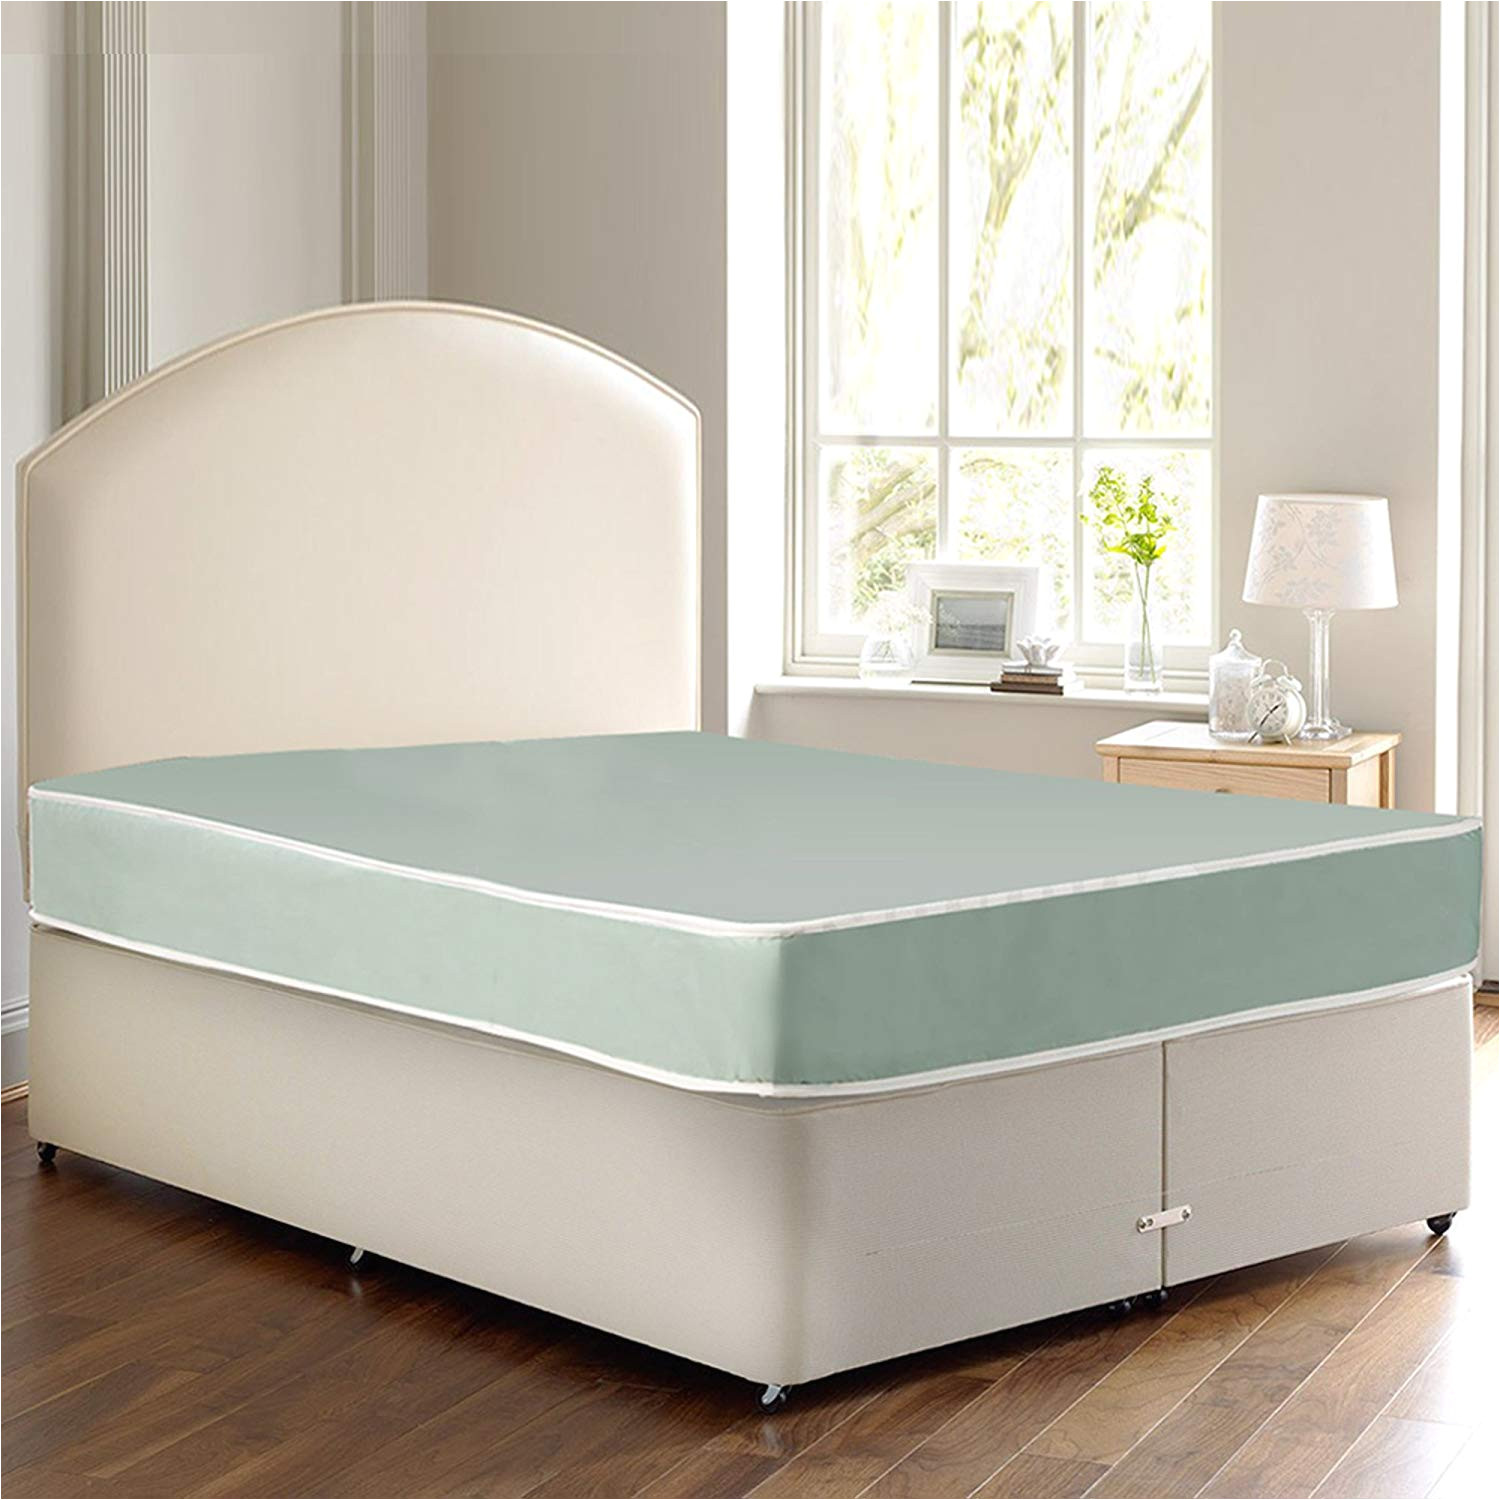 amazon com mattress comfort 102 3 3 1 firm mattress twin size kitchen dining